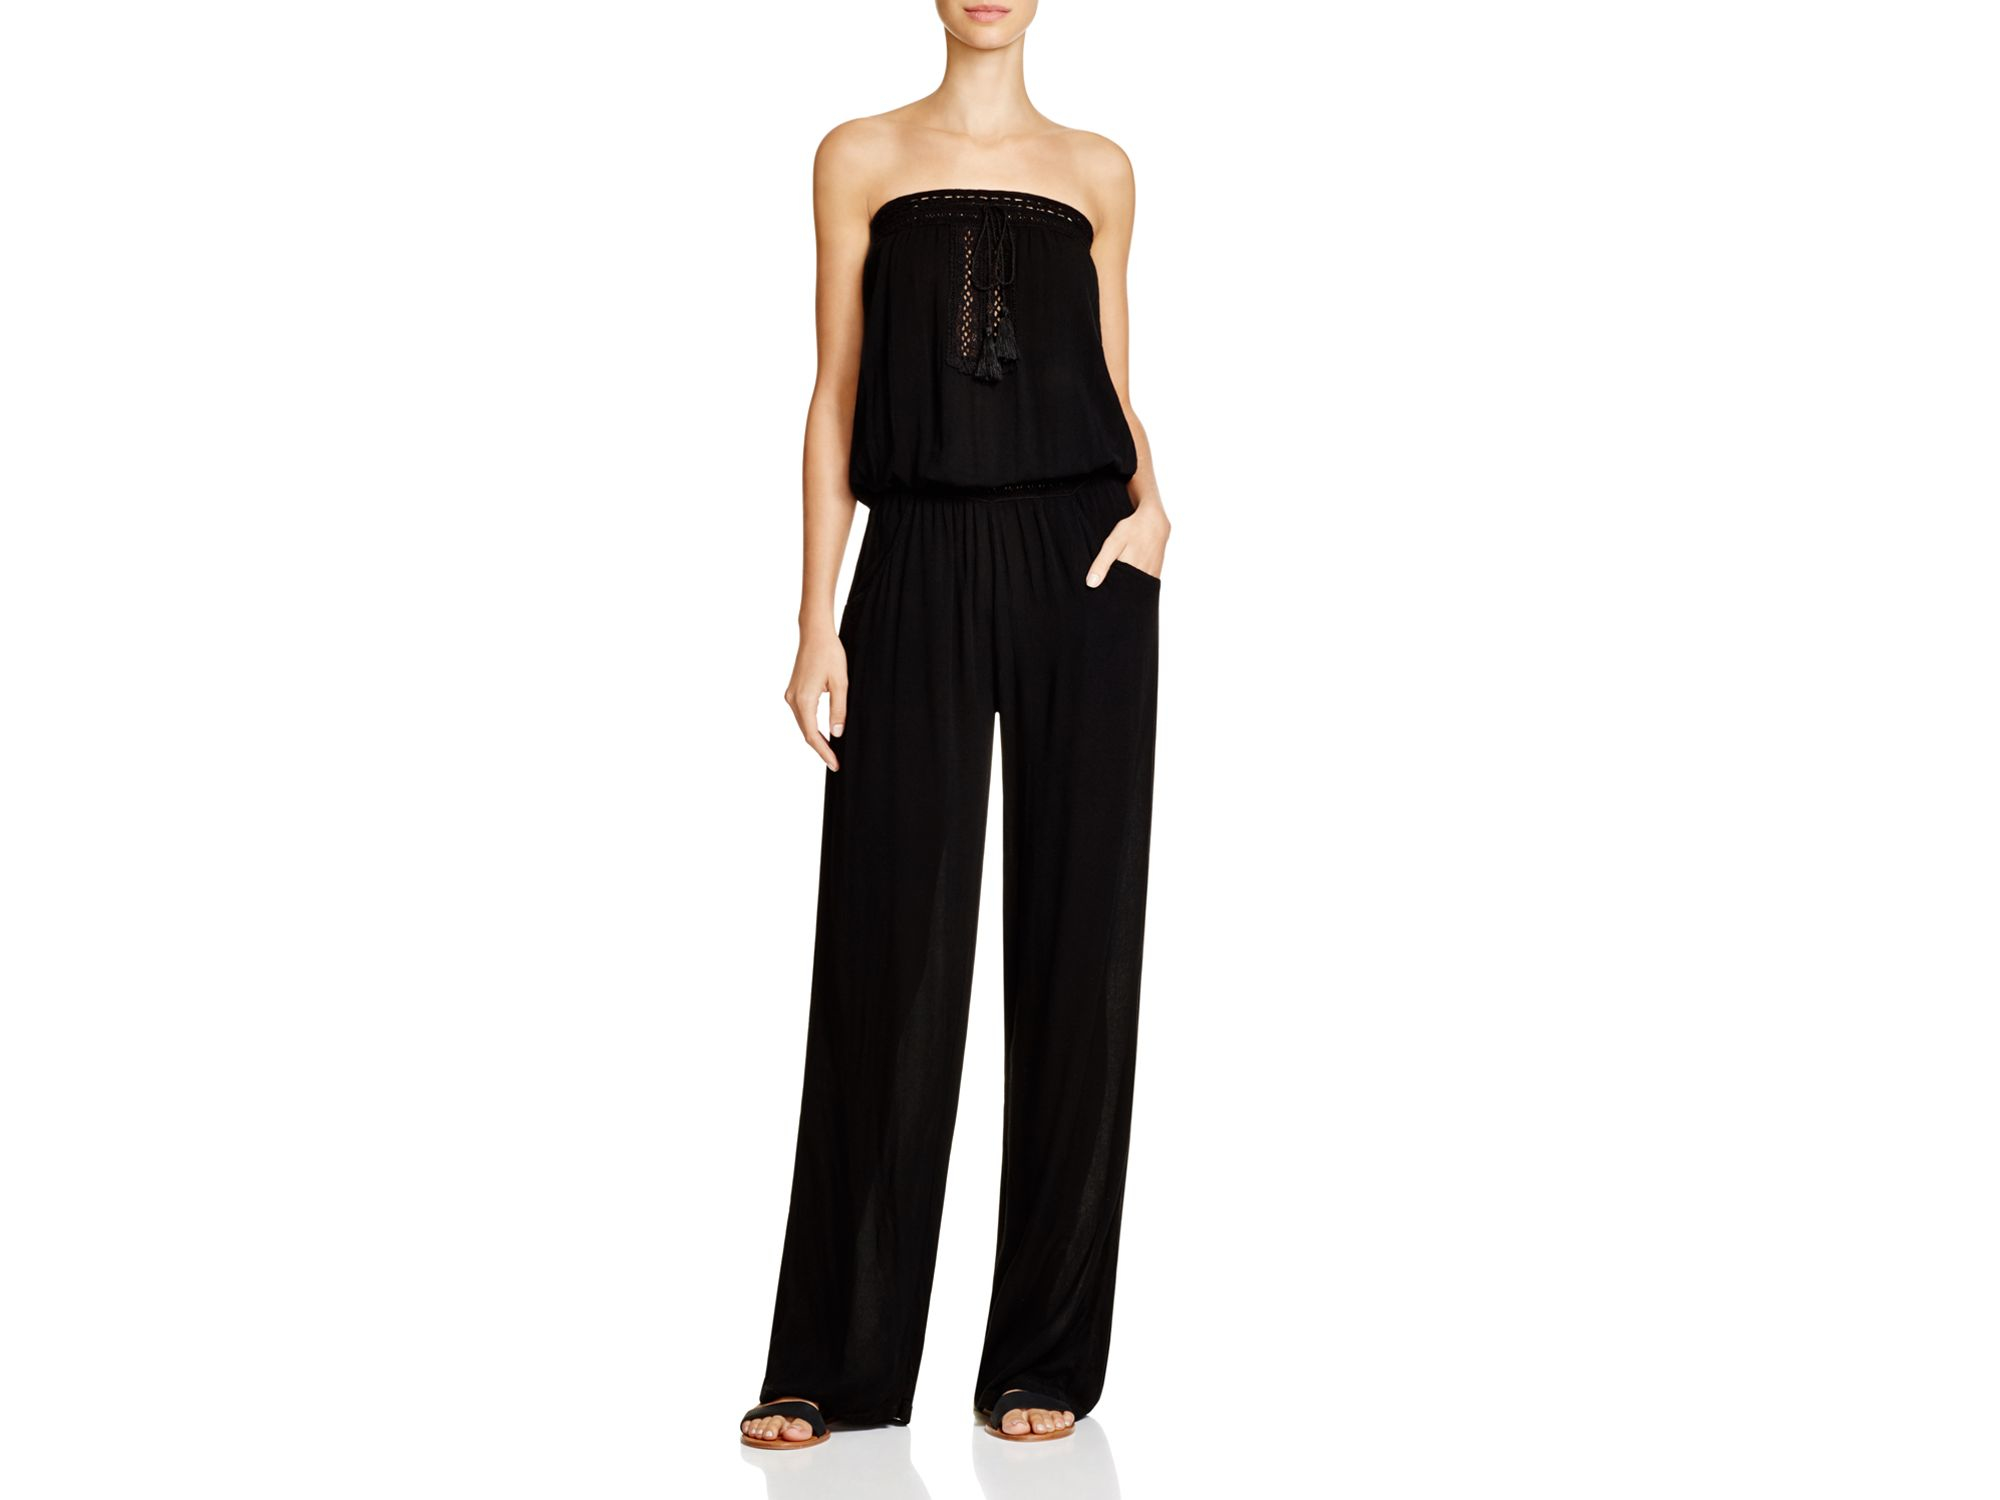 f72e7ebb9d79 Lyst - Surf Gypsy Crocheted Trim Jumpsuit Swim Cover Up in Black